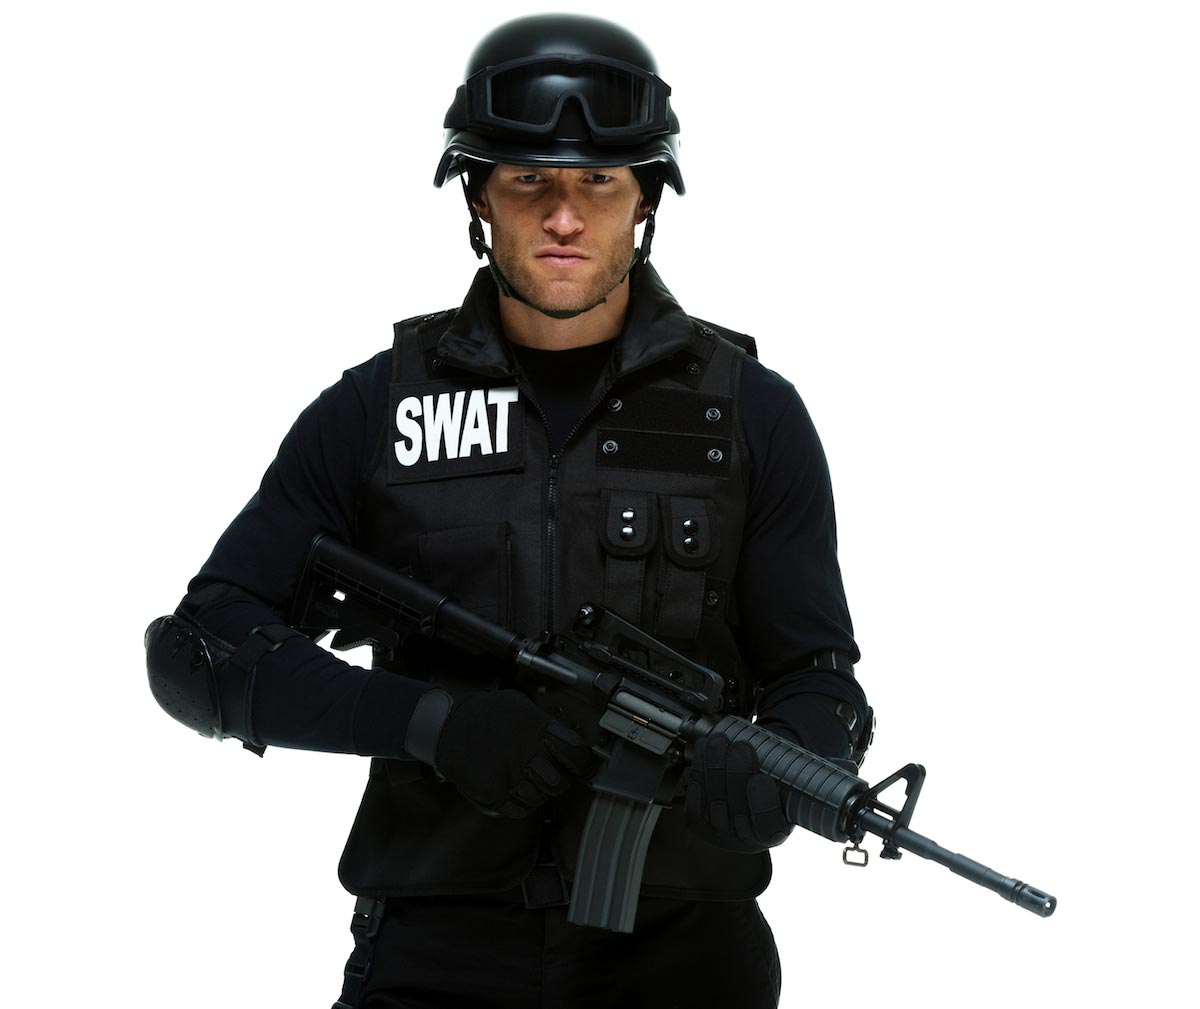 Swat-Soldier-Police-Gun-Military